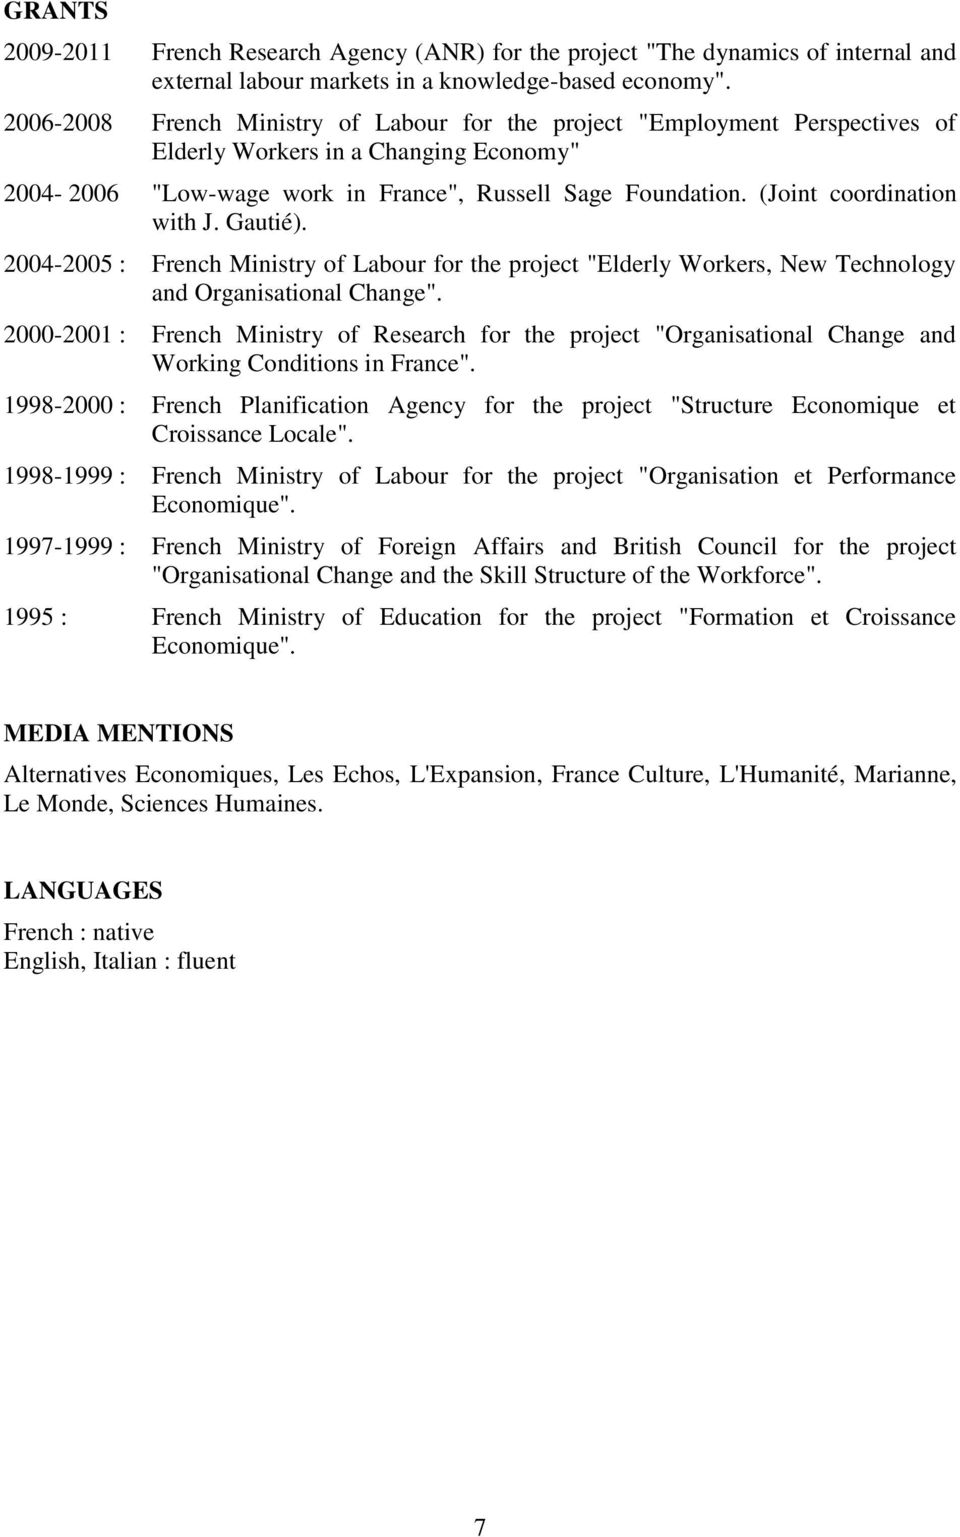 "(Joint coordination with J. Gautié). 2004-2005 : French Ministry of Labour for the project ""Elderly Workers, New Technology and Organisational Change""."